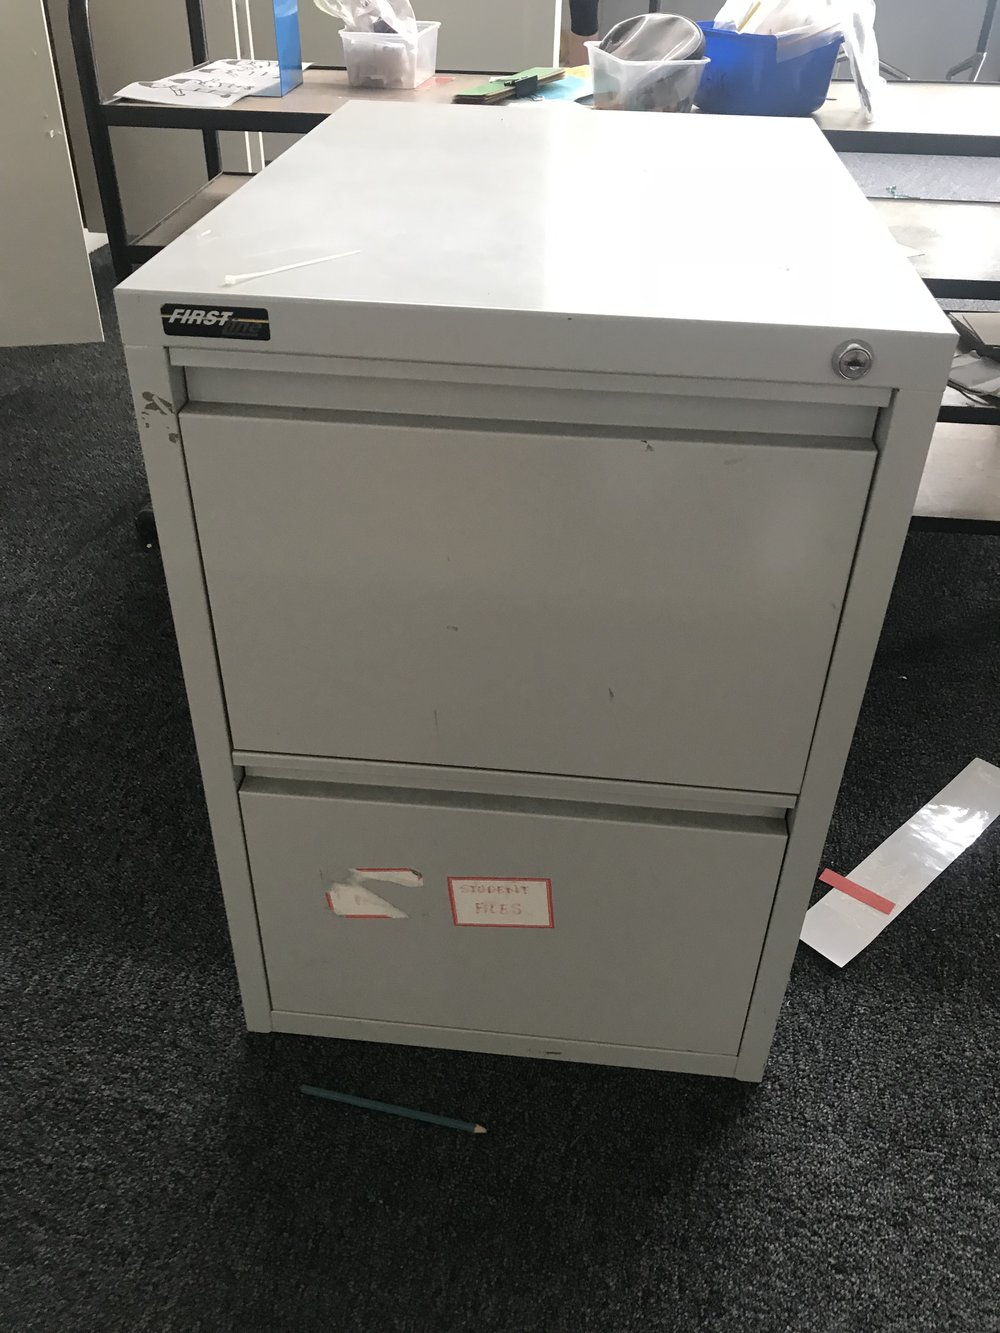 2 x filing cabinets - 1 in great condition, other not so great but good for garage storage